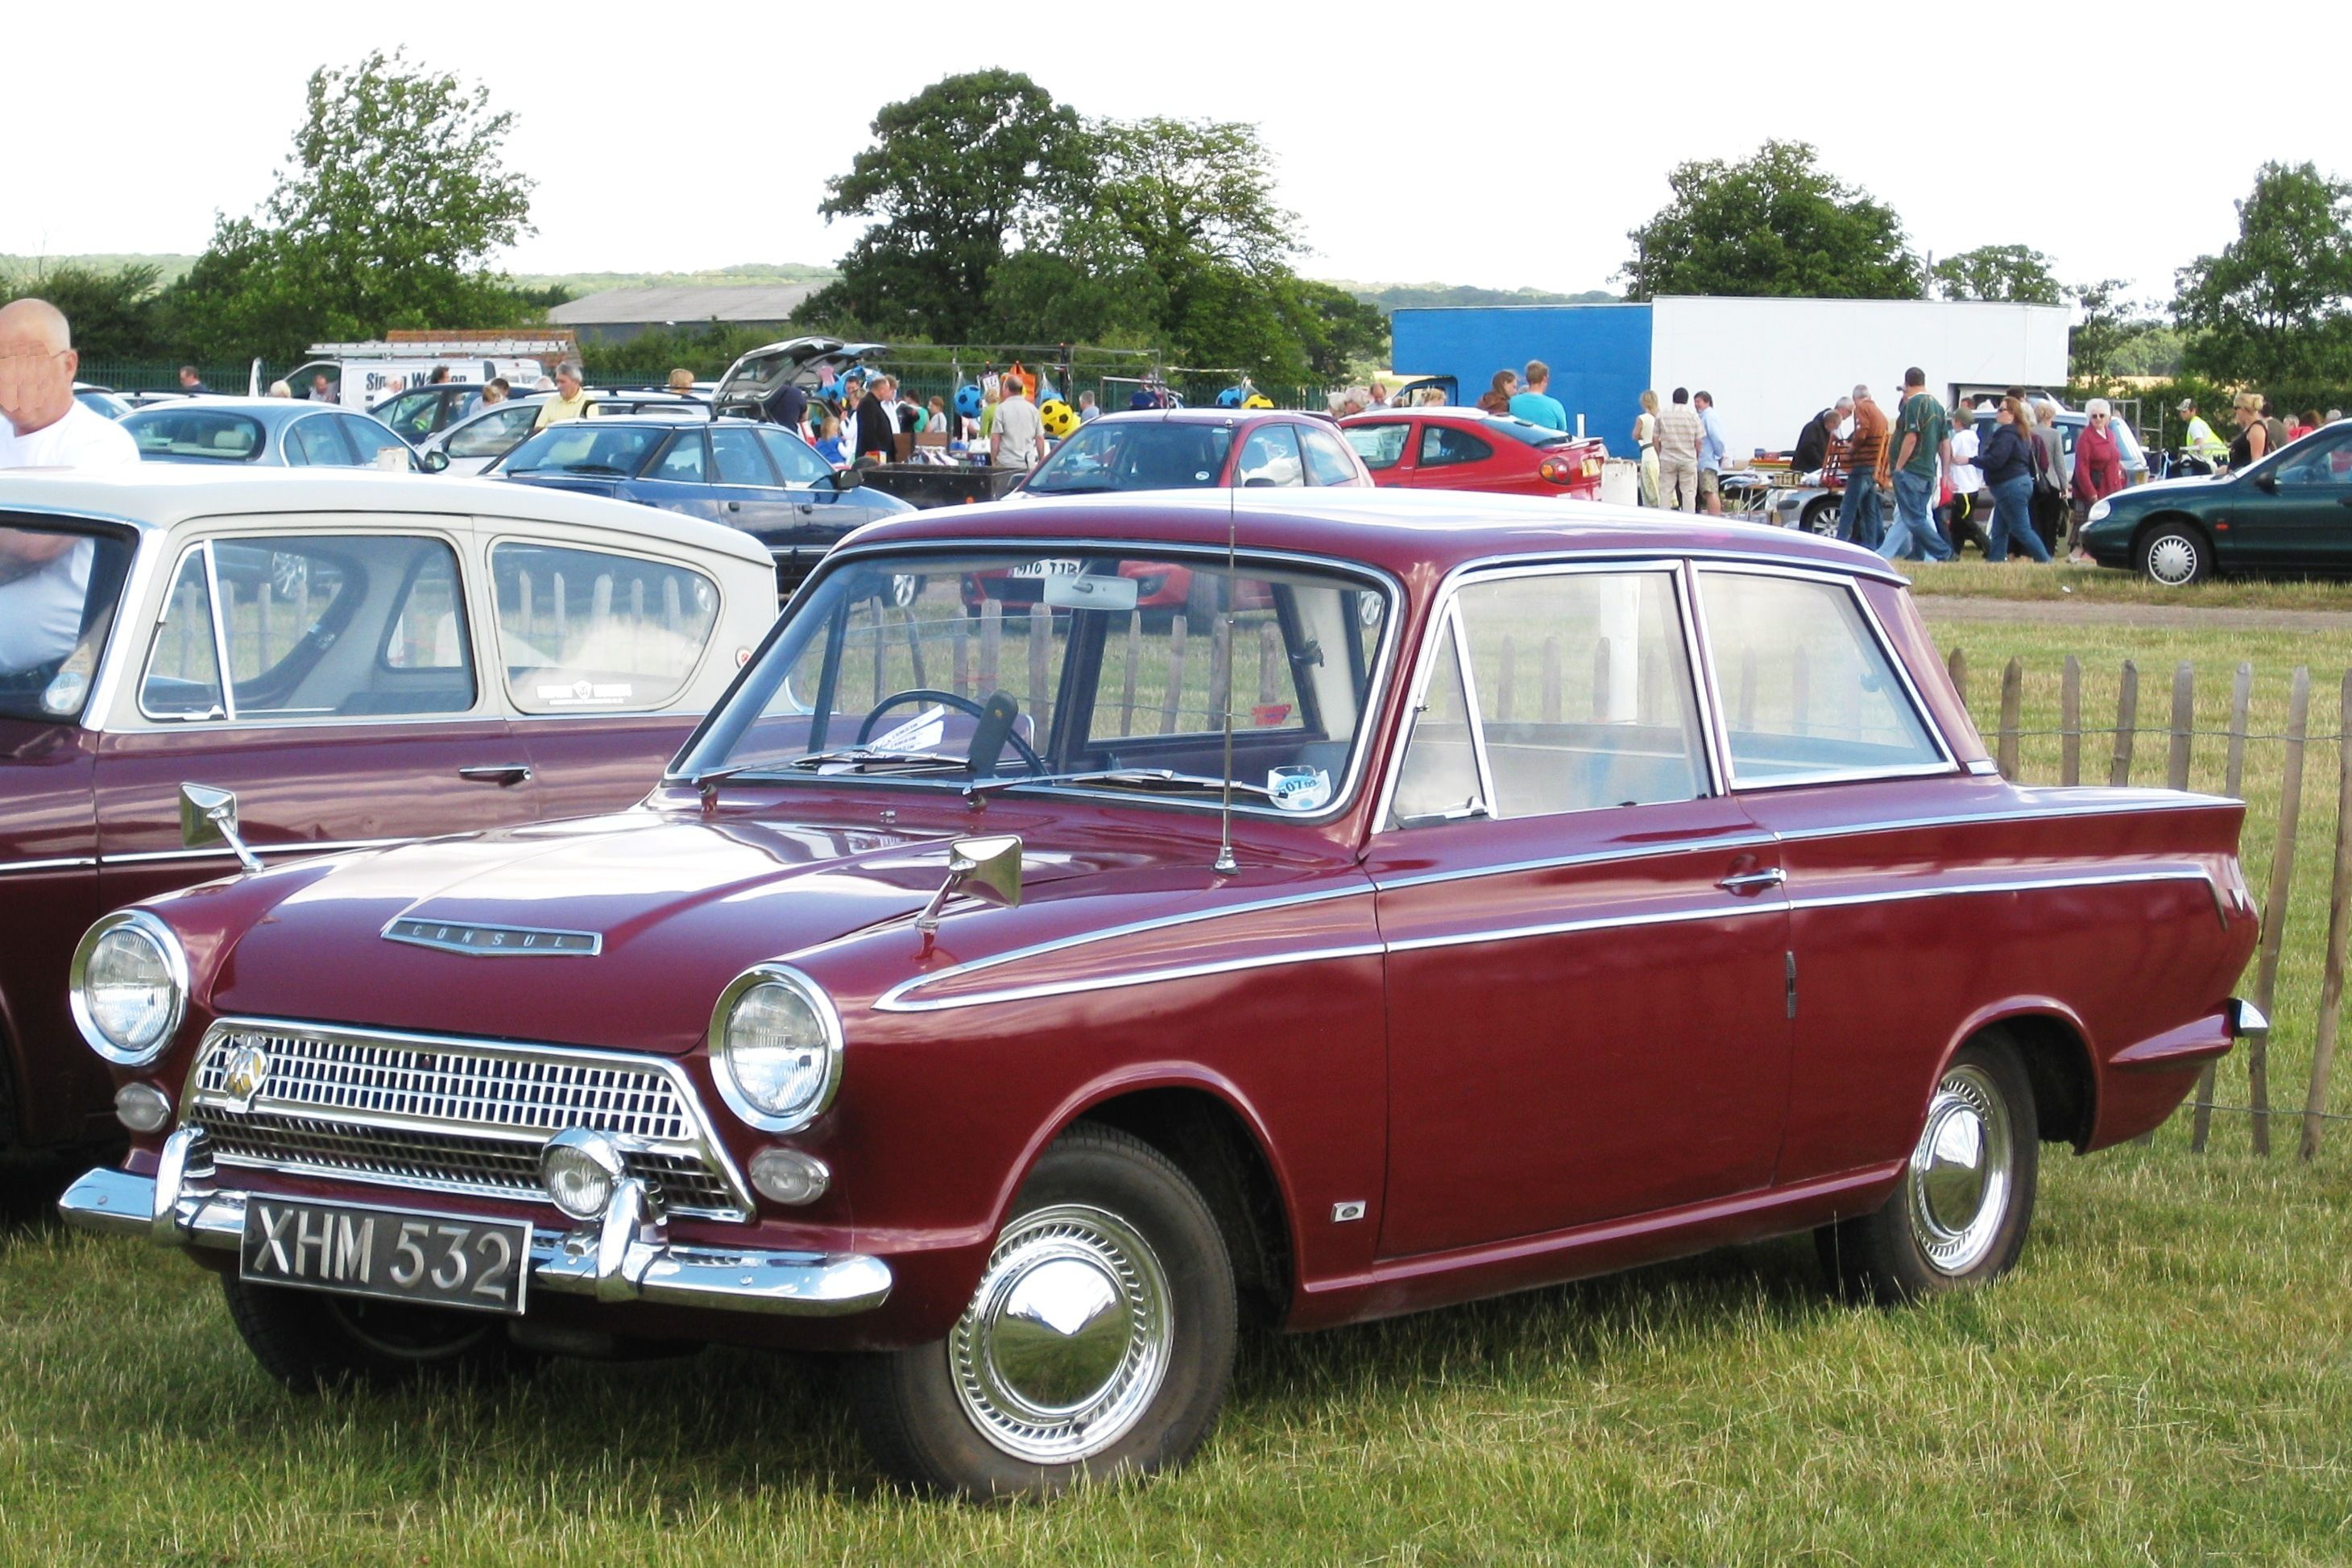 1966 d ford cortina mk1 export gt 4dr in ermine white black interior rare mk1 ford and cars